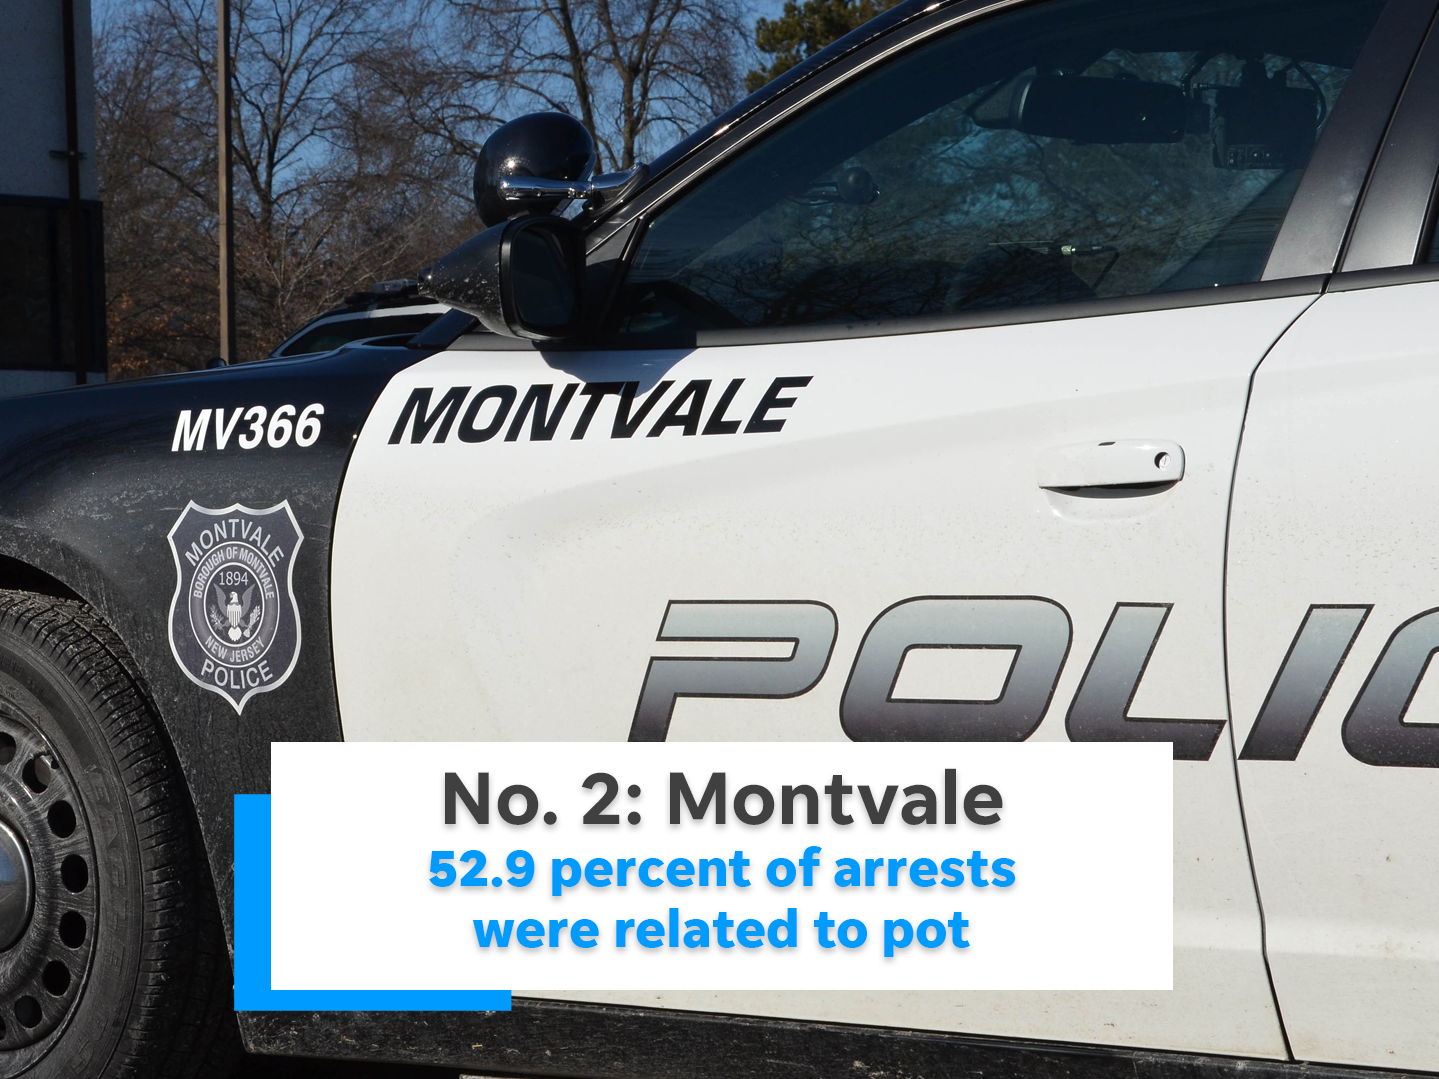 52.9 percent of Montvale's arrests were related to marijuana.